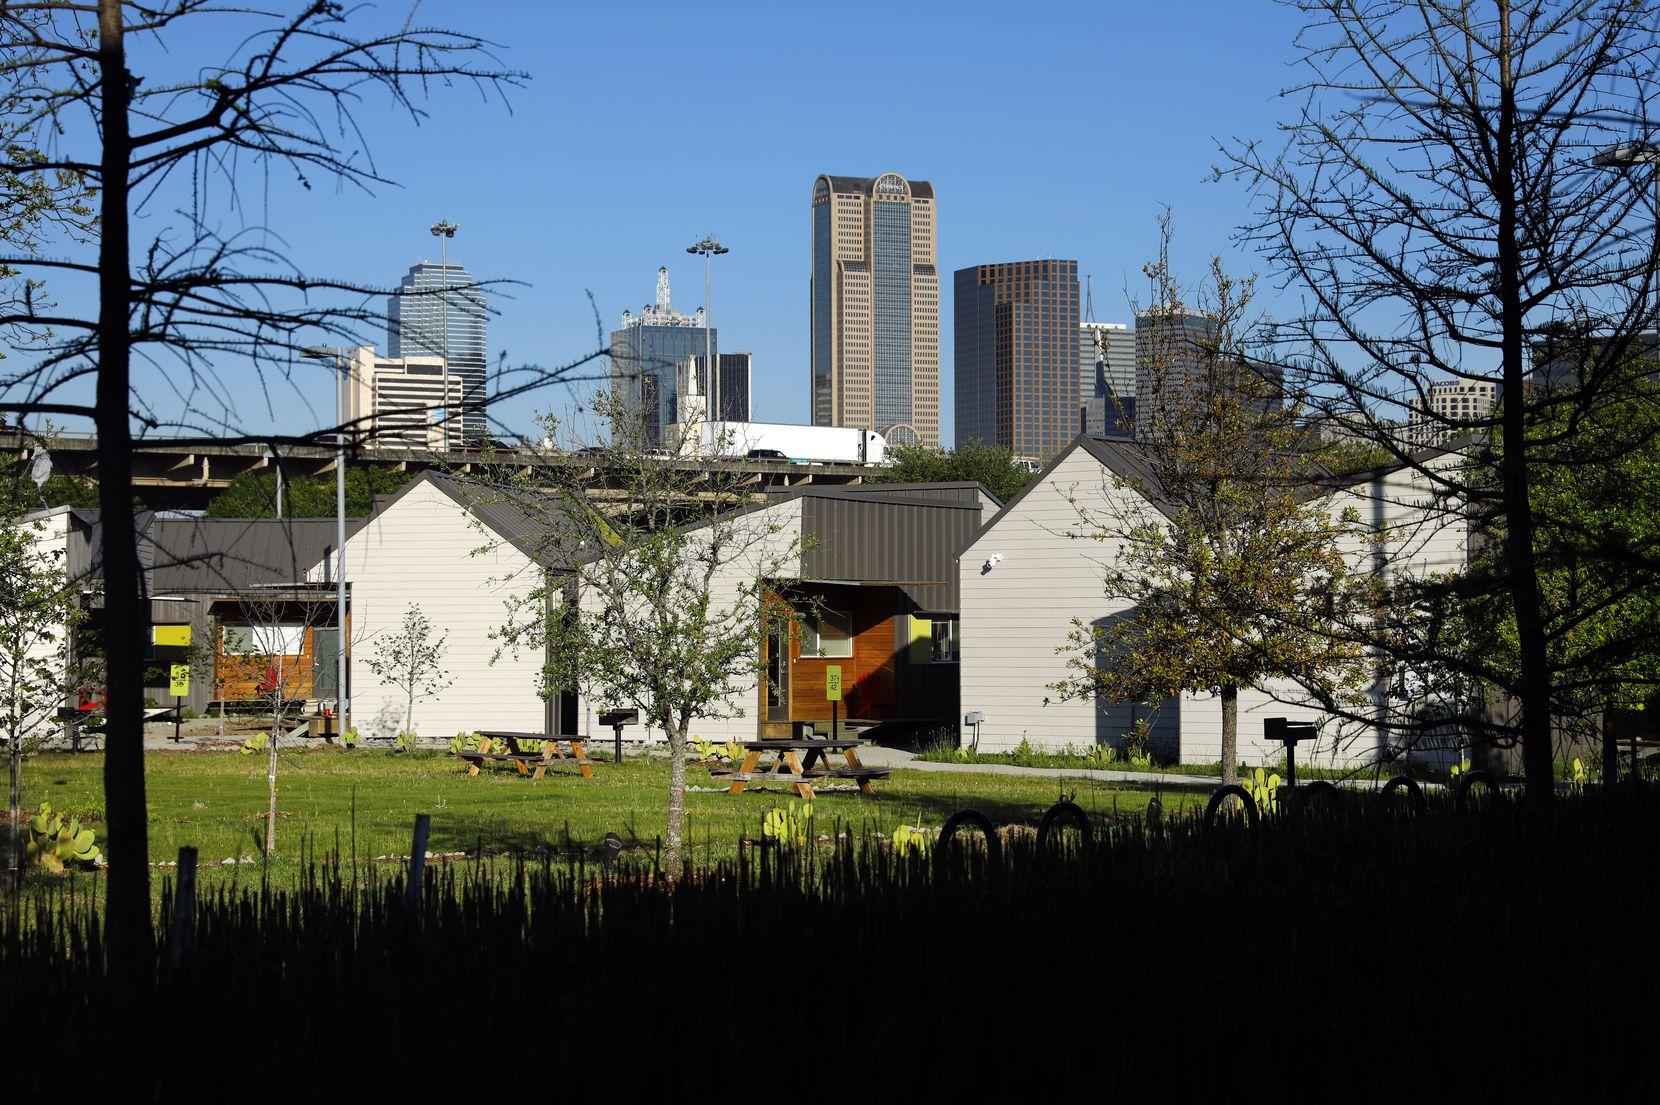 The Dallas skyline rises above the Cottages at Hickory Crossing, which are located on the southeast corner of Interstate 35E and Interstate 45 in Dallas.